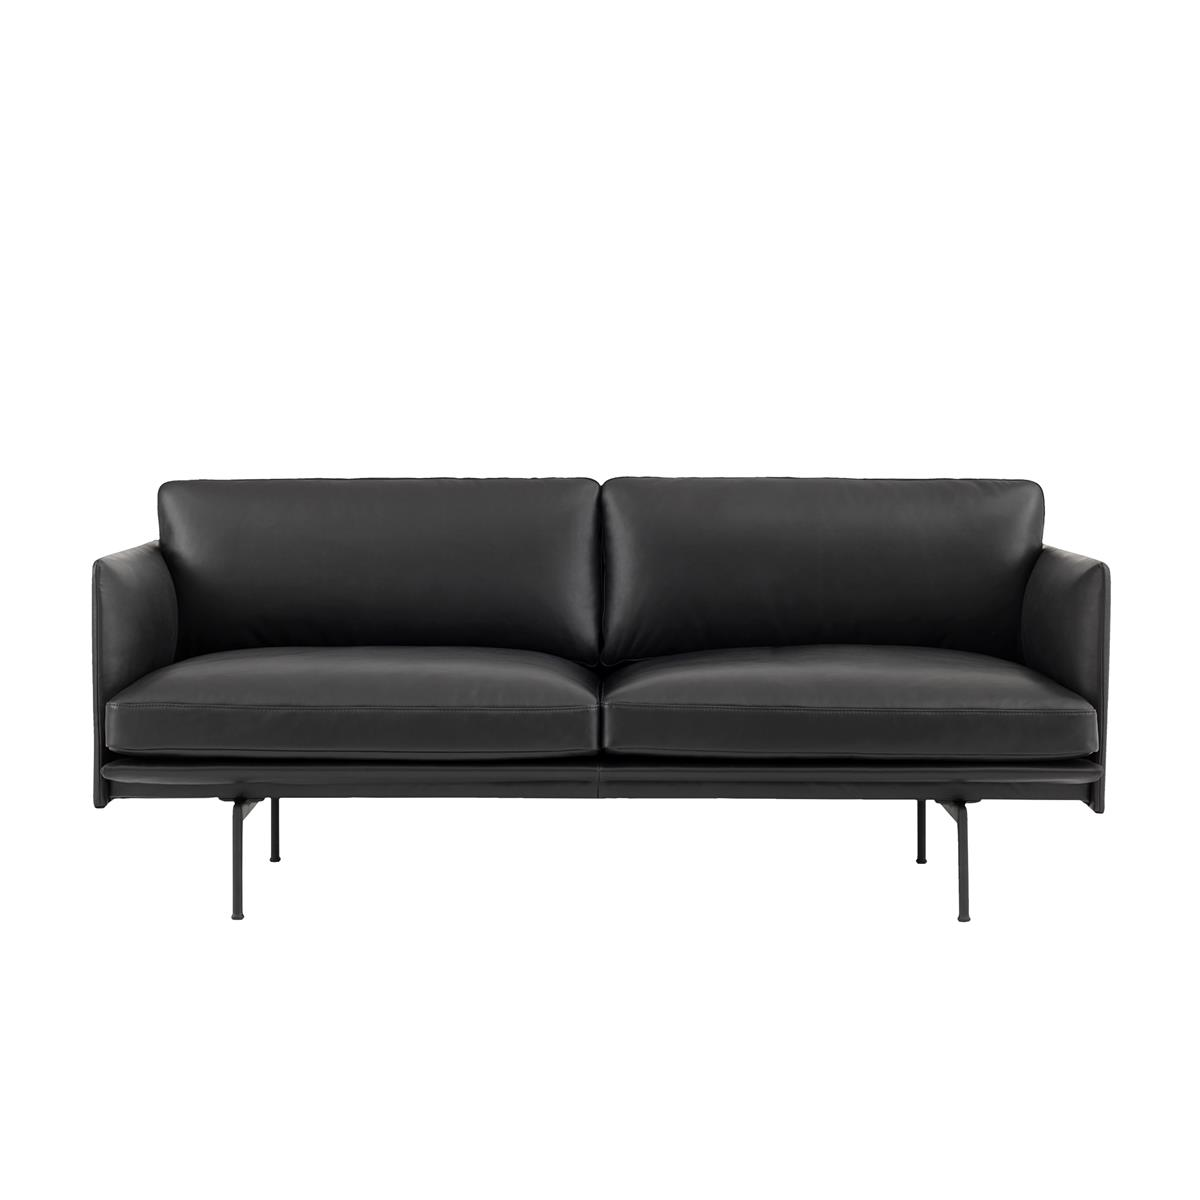 Outline Sofa 2 Seater - Silk Leather Black